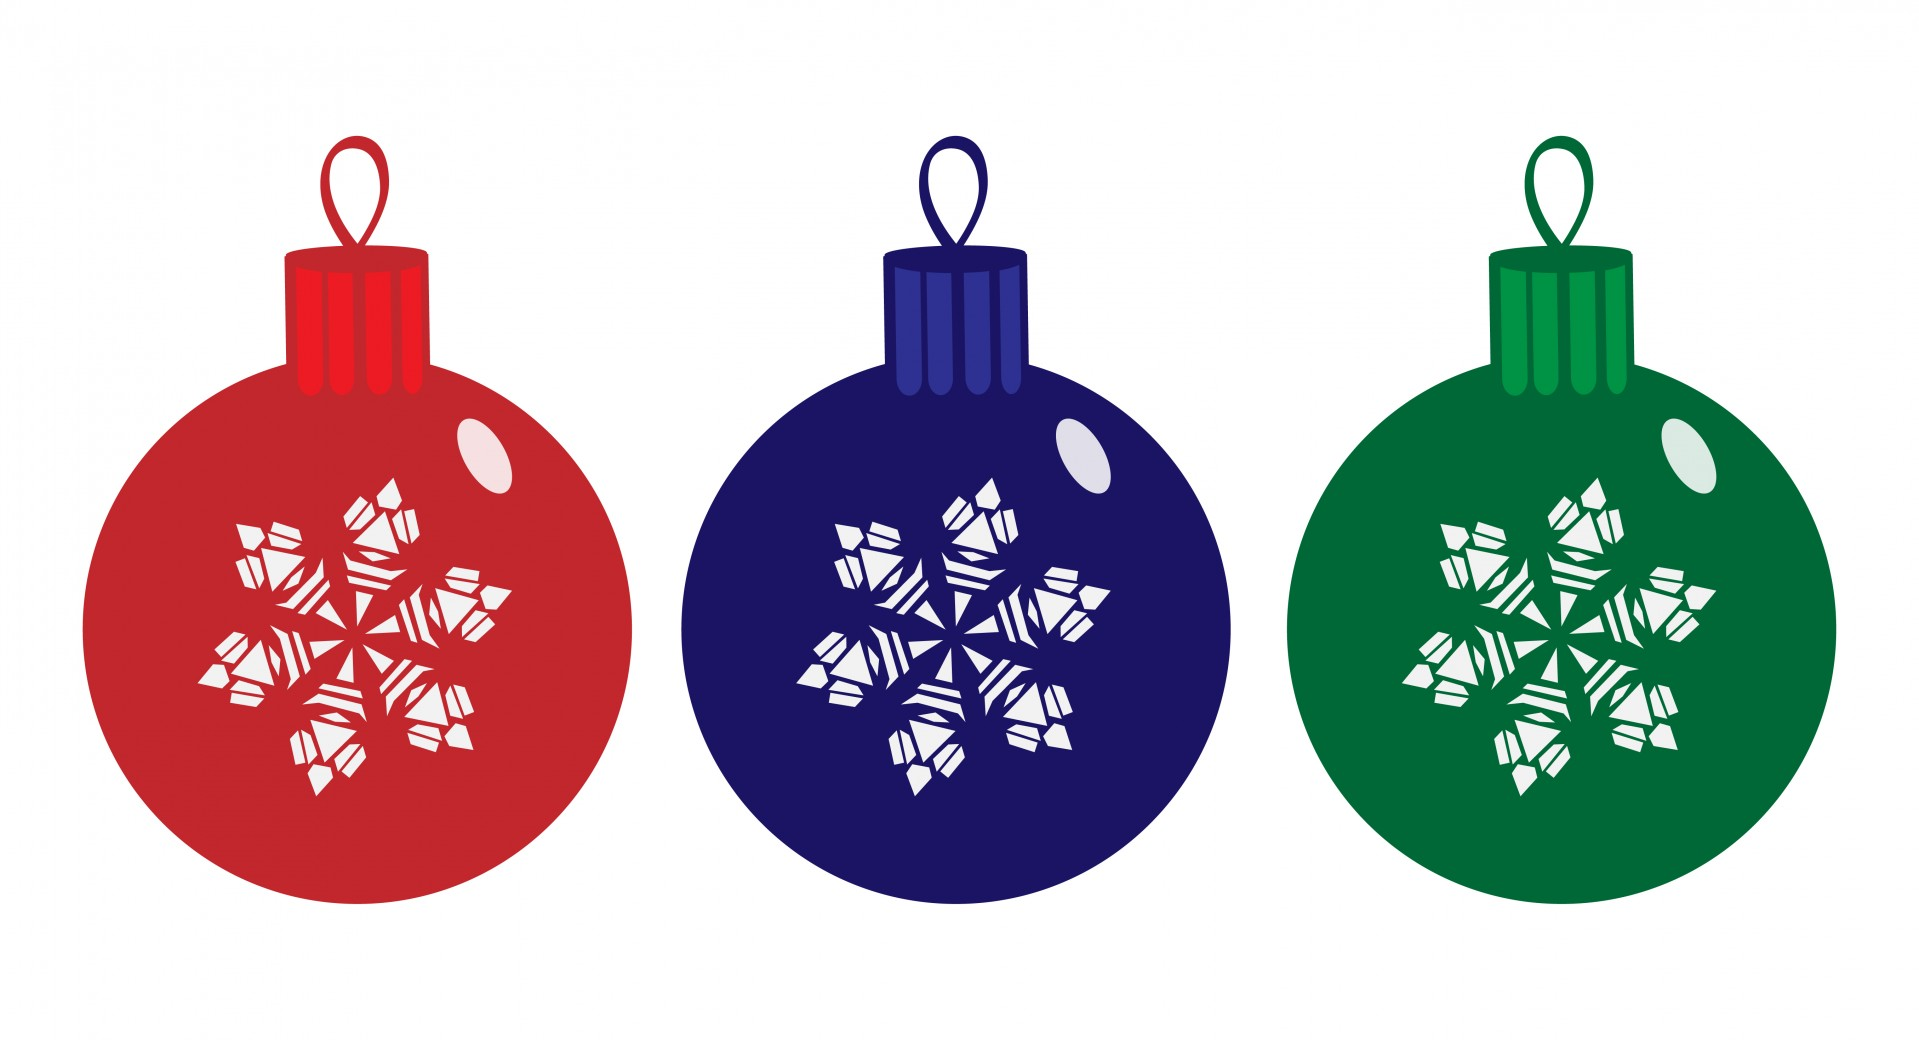 Christmas clipart bauble. Baubles free stock photo